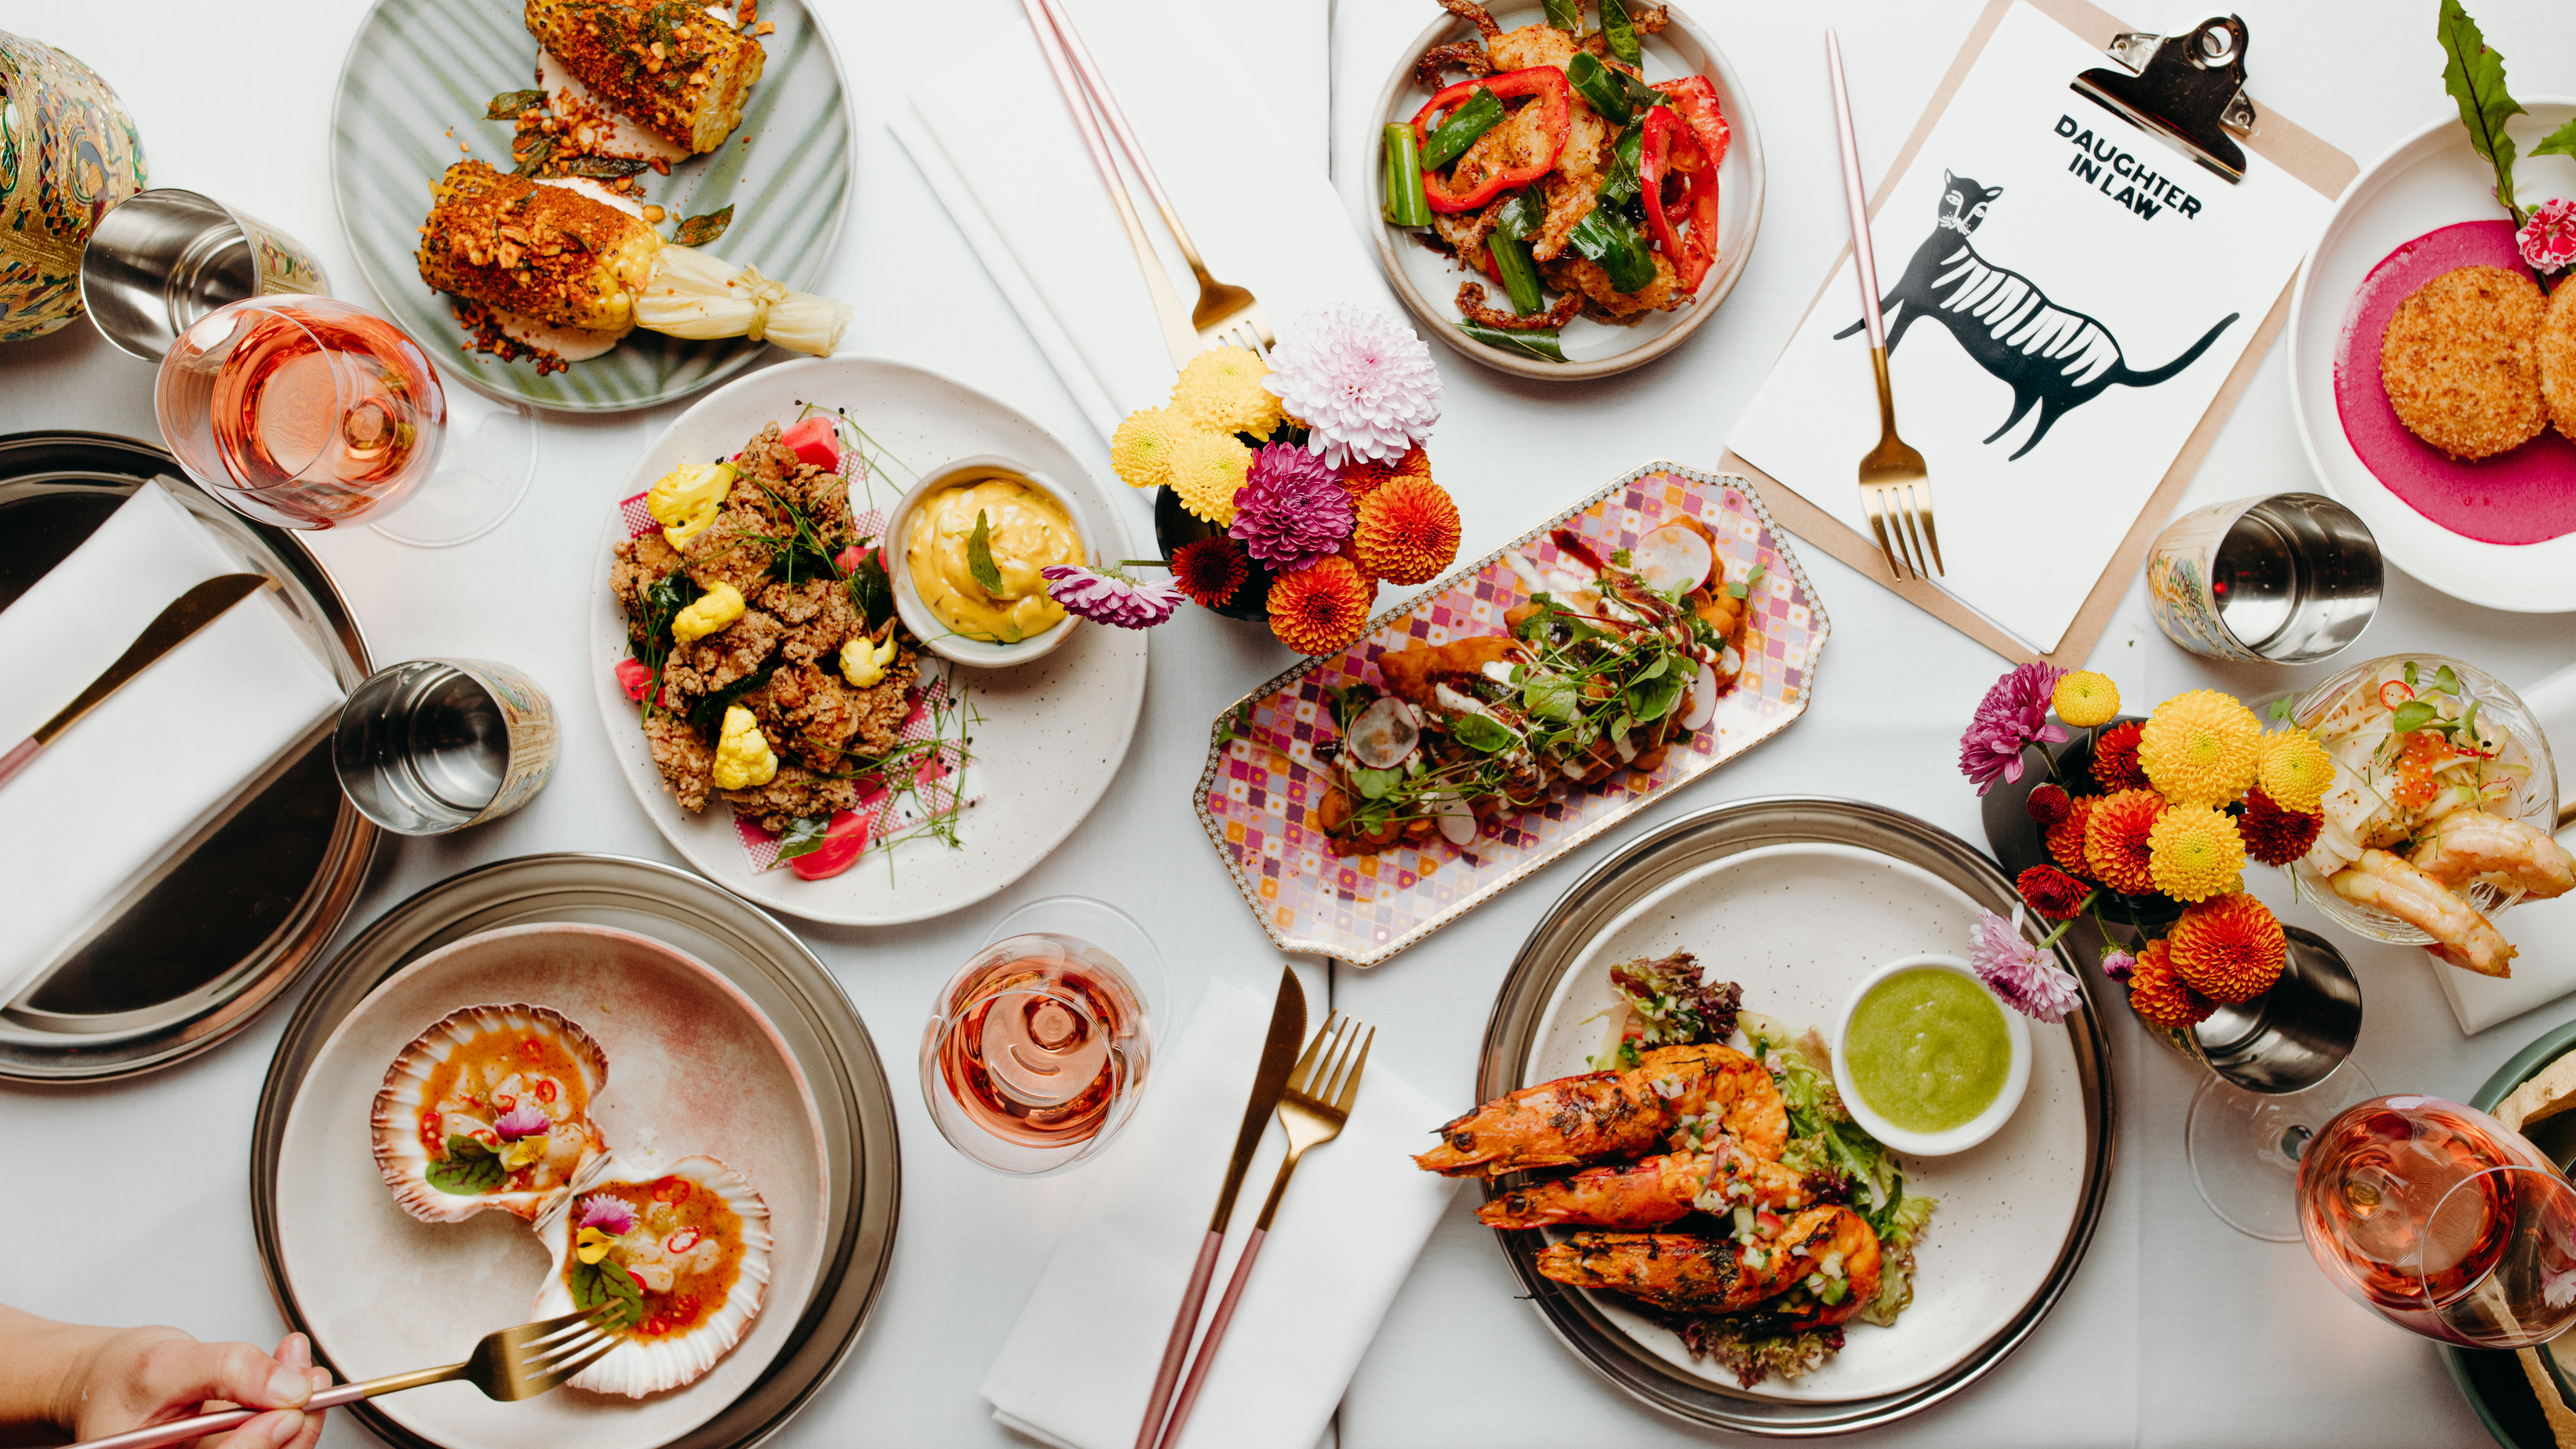 several dishes on a table